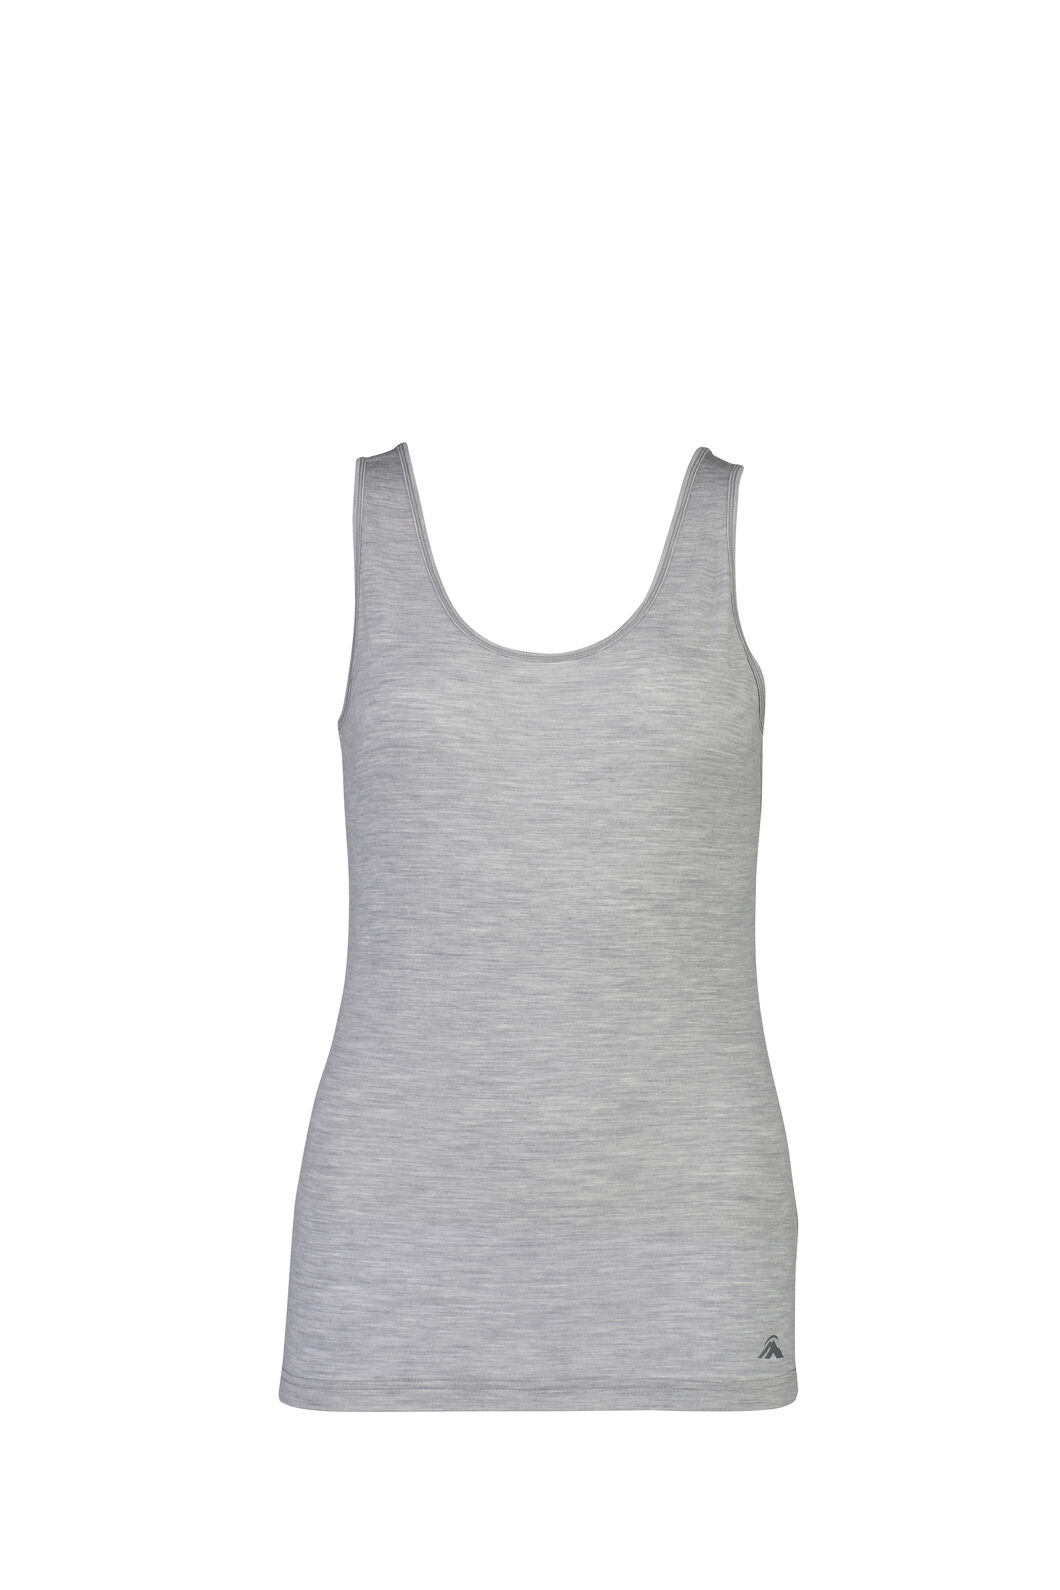 Macpac 150 Merino Singlet - Women's, Light Grey Marle, hi-res